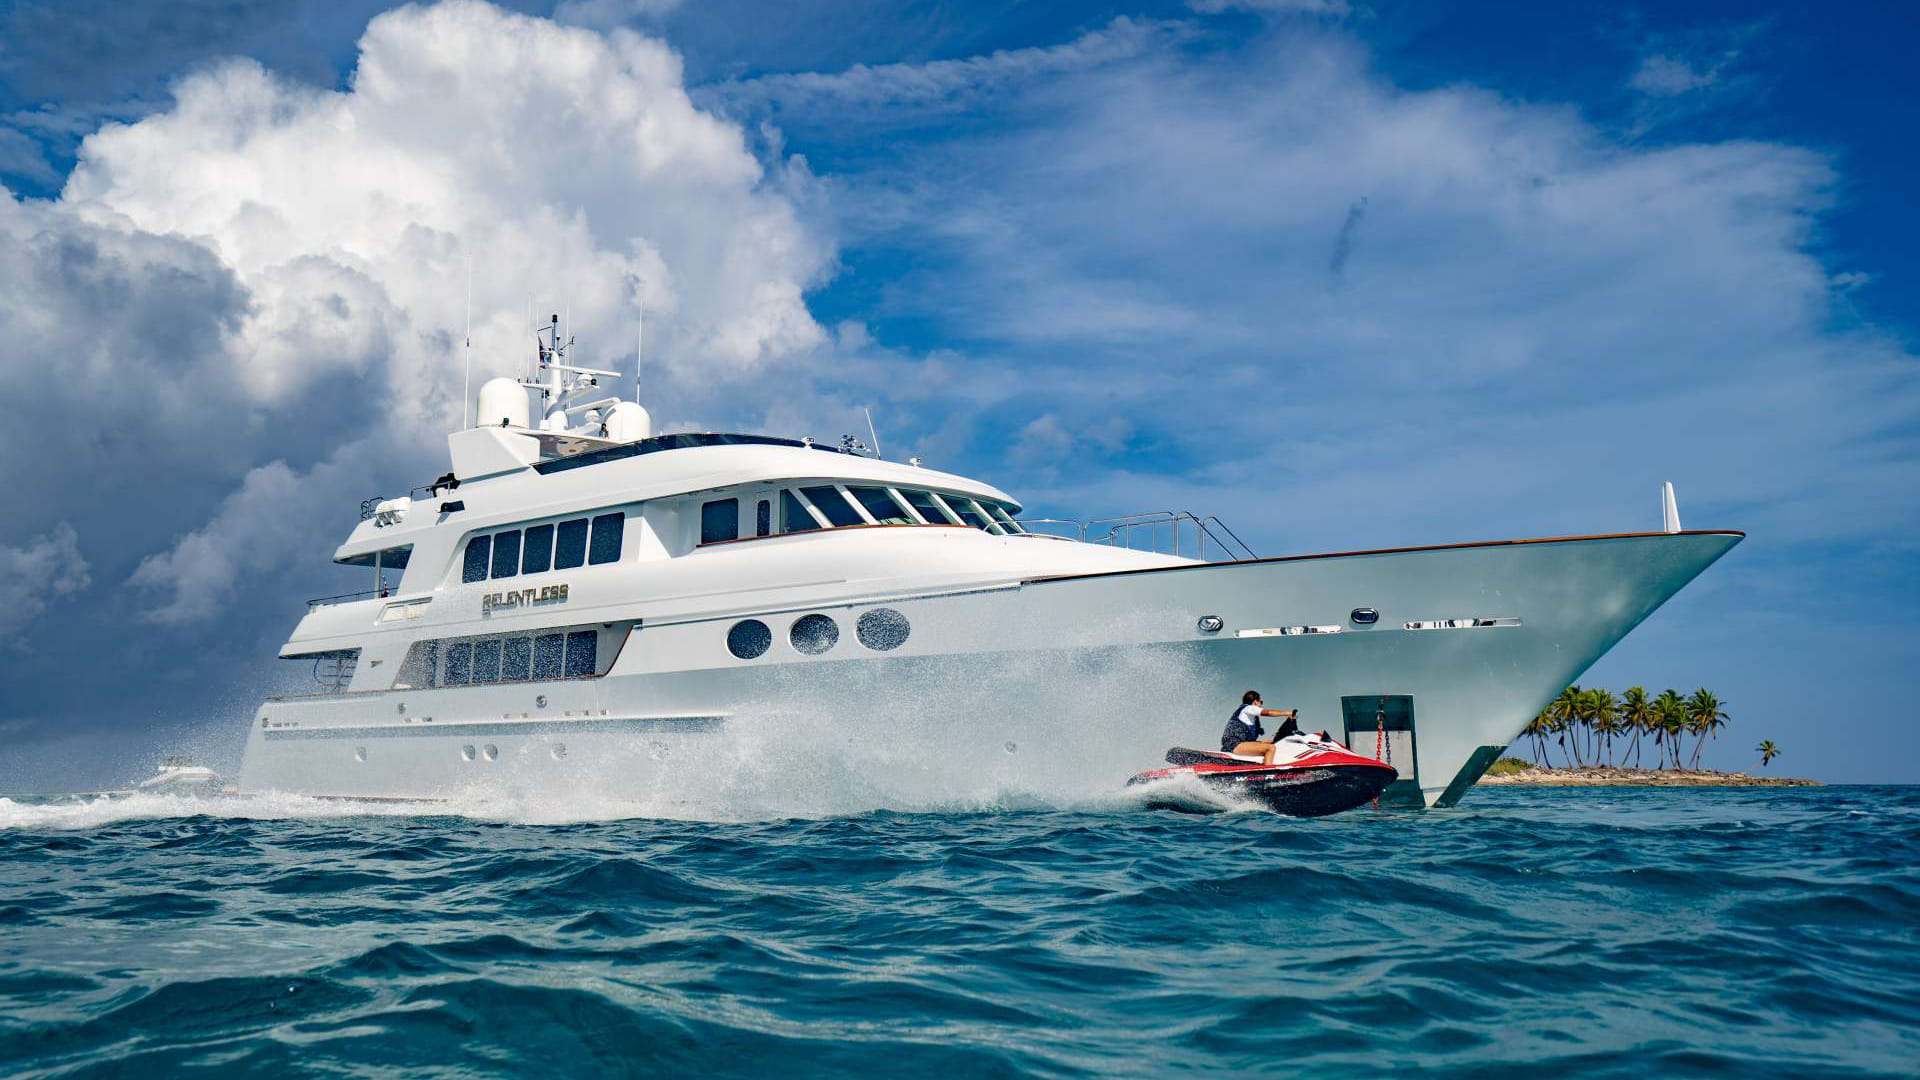 Relentless Yacht Sold